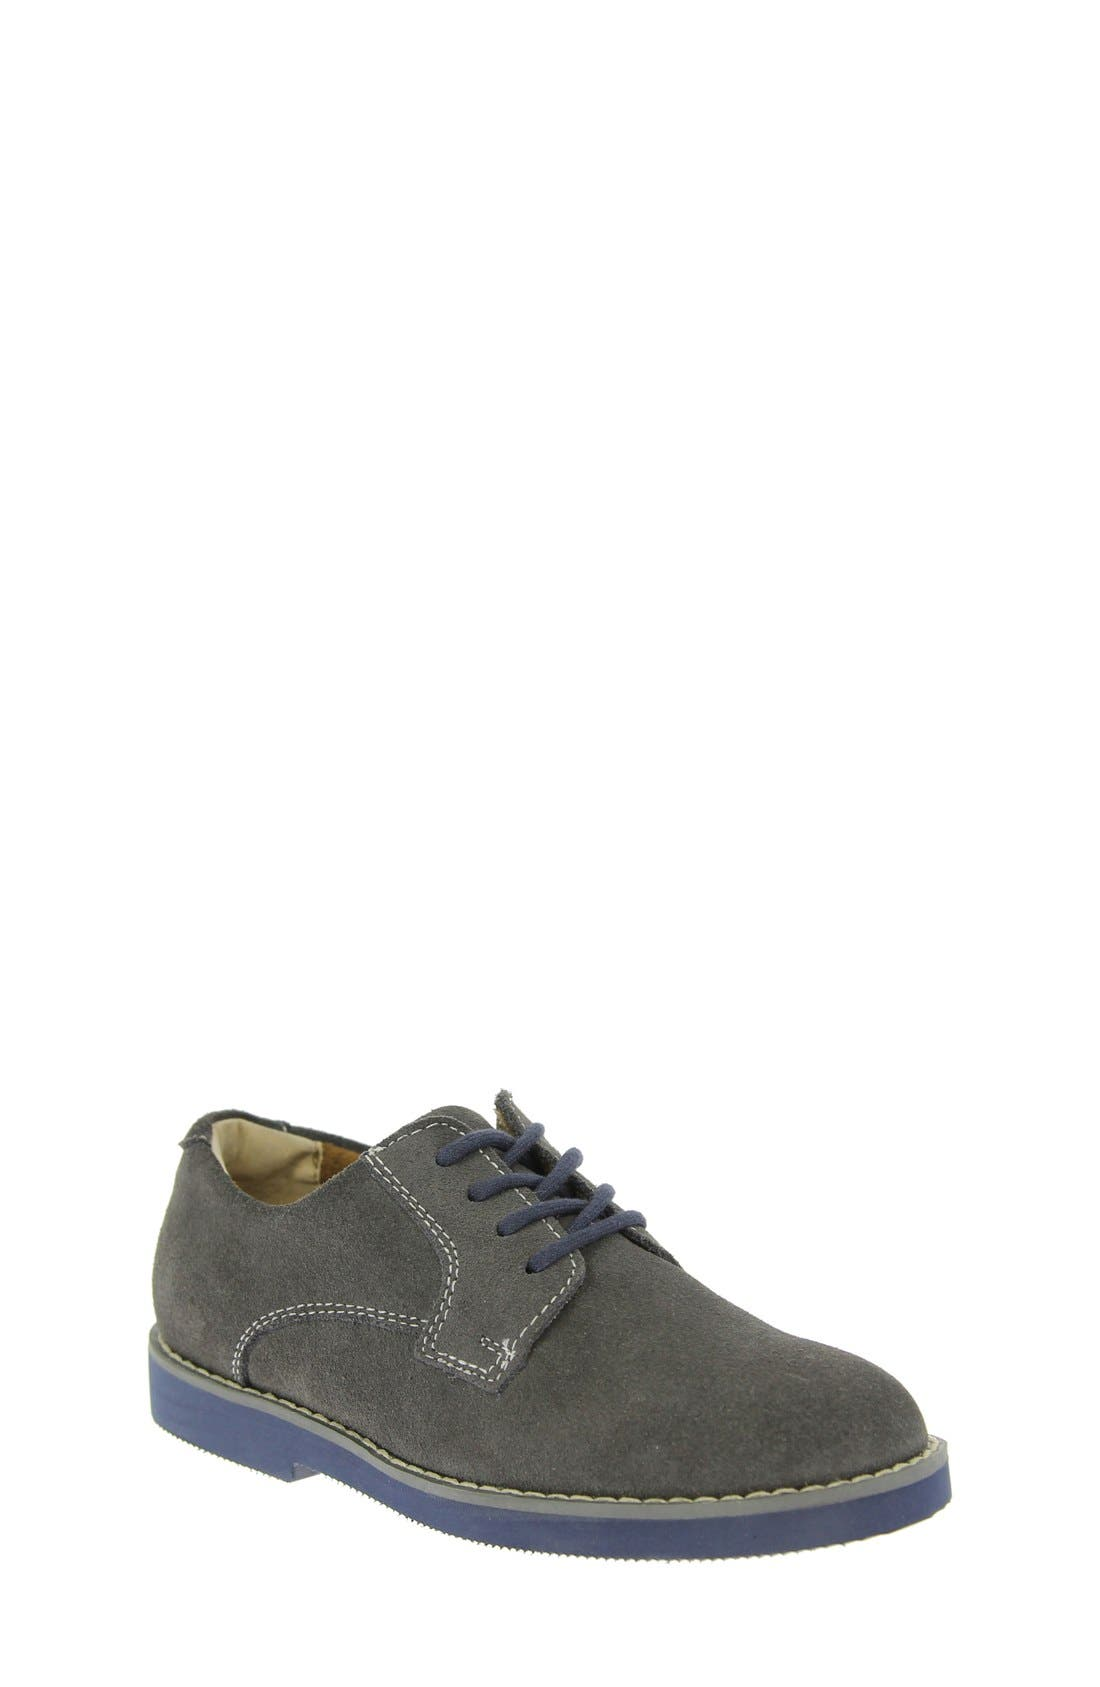 Main Image - Florsheim Two Tone Oxford (Toddler, Little Kid & Big Kid)